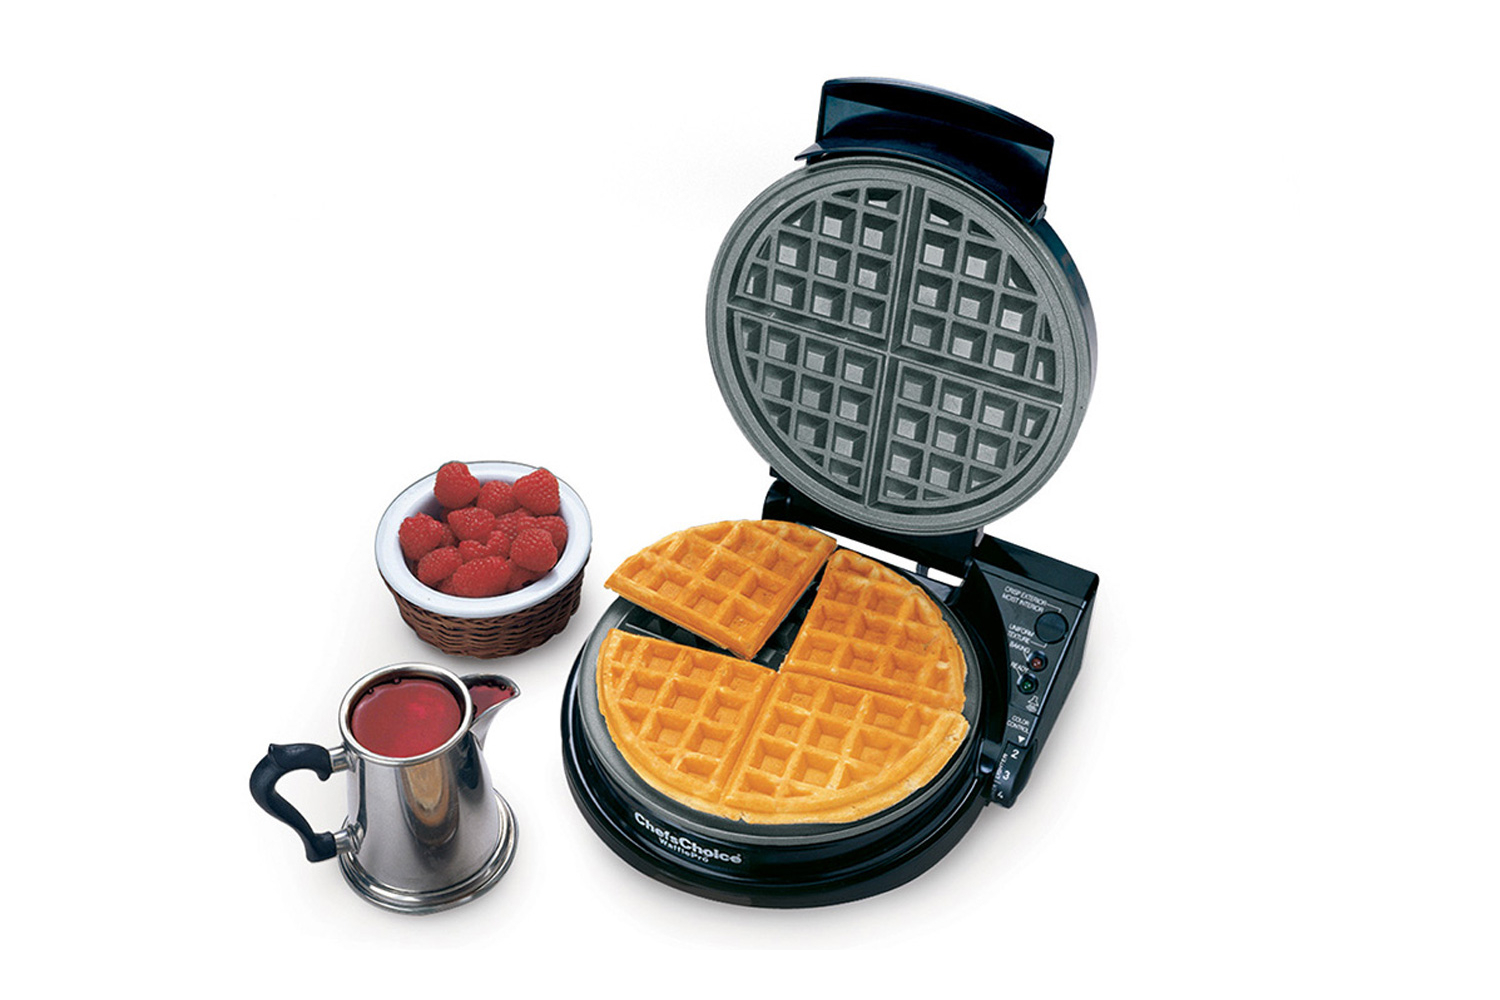 Chef'sChoice 830 Waffle Pro for Classic Belgian Waffles - Special Edition